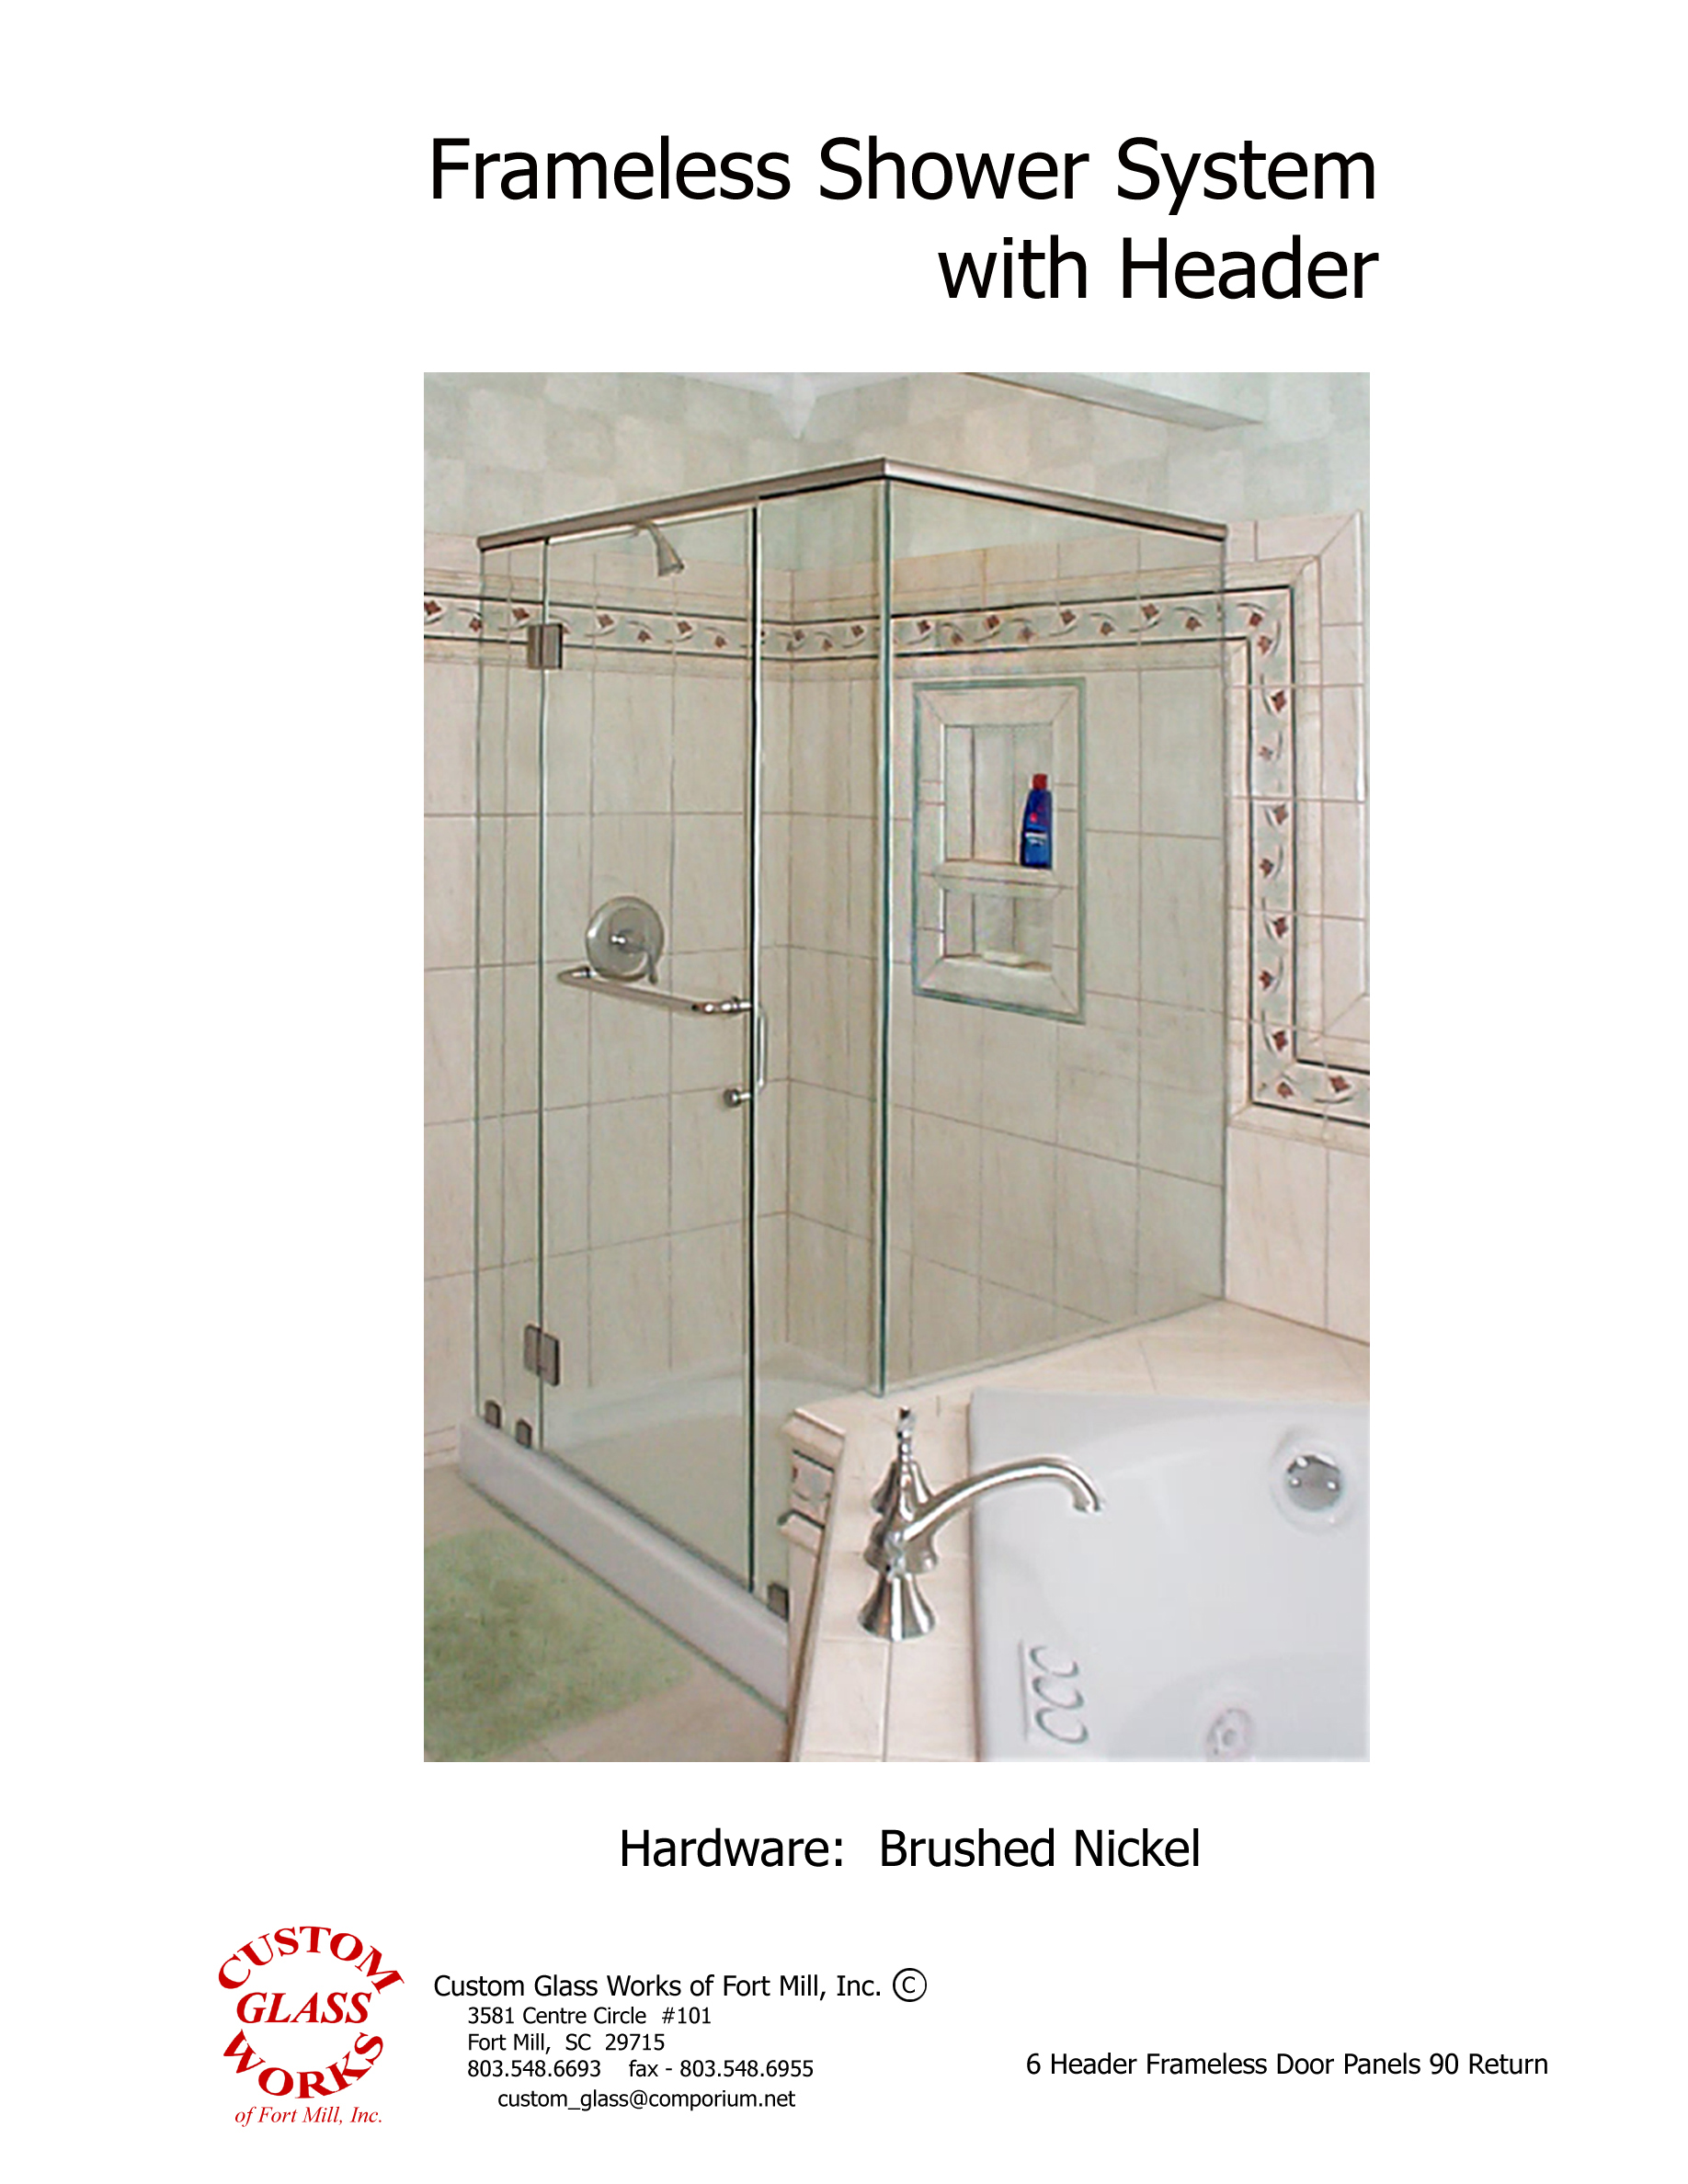 6 Header Frameless Door Panels 90 Return